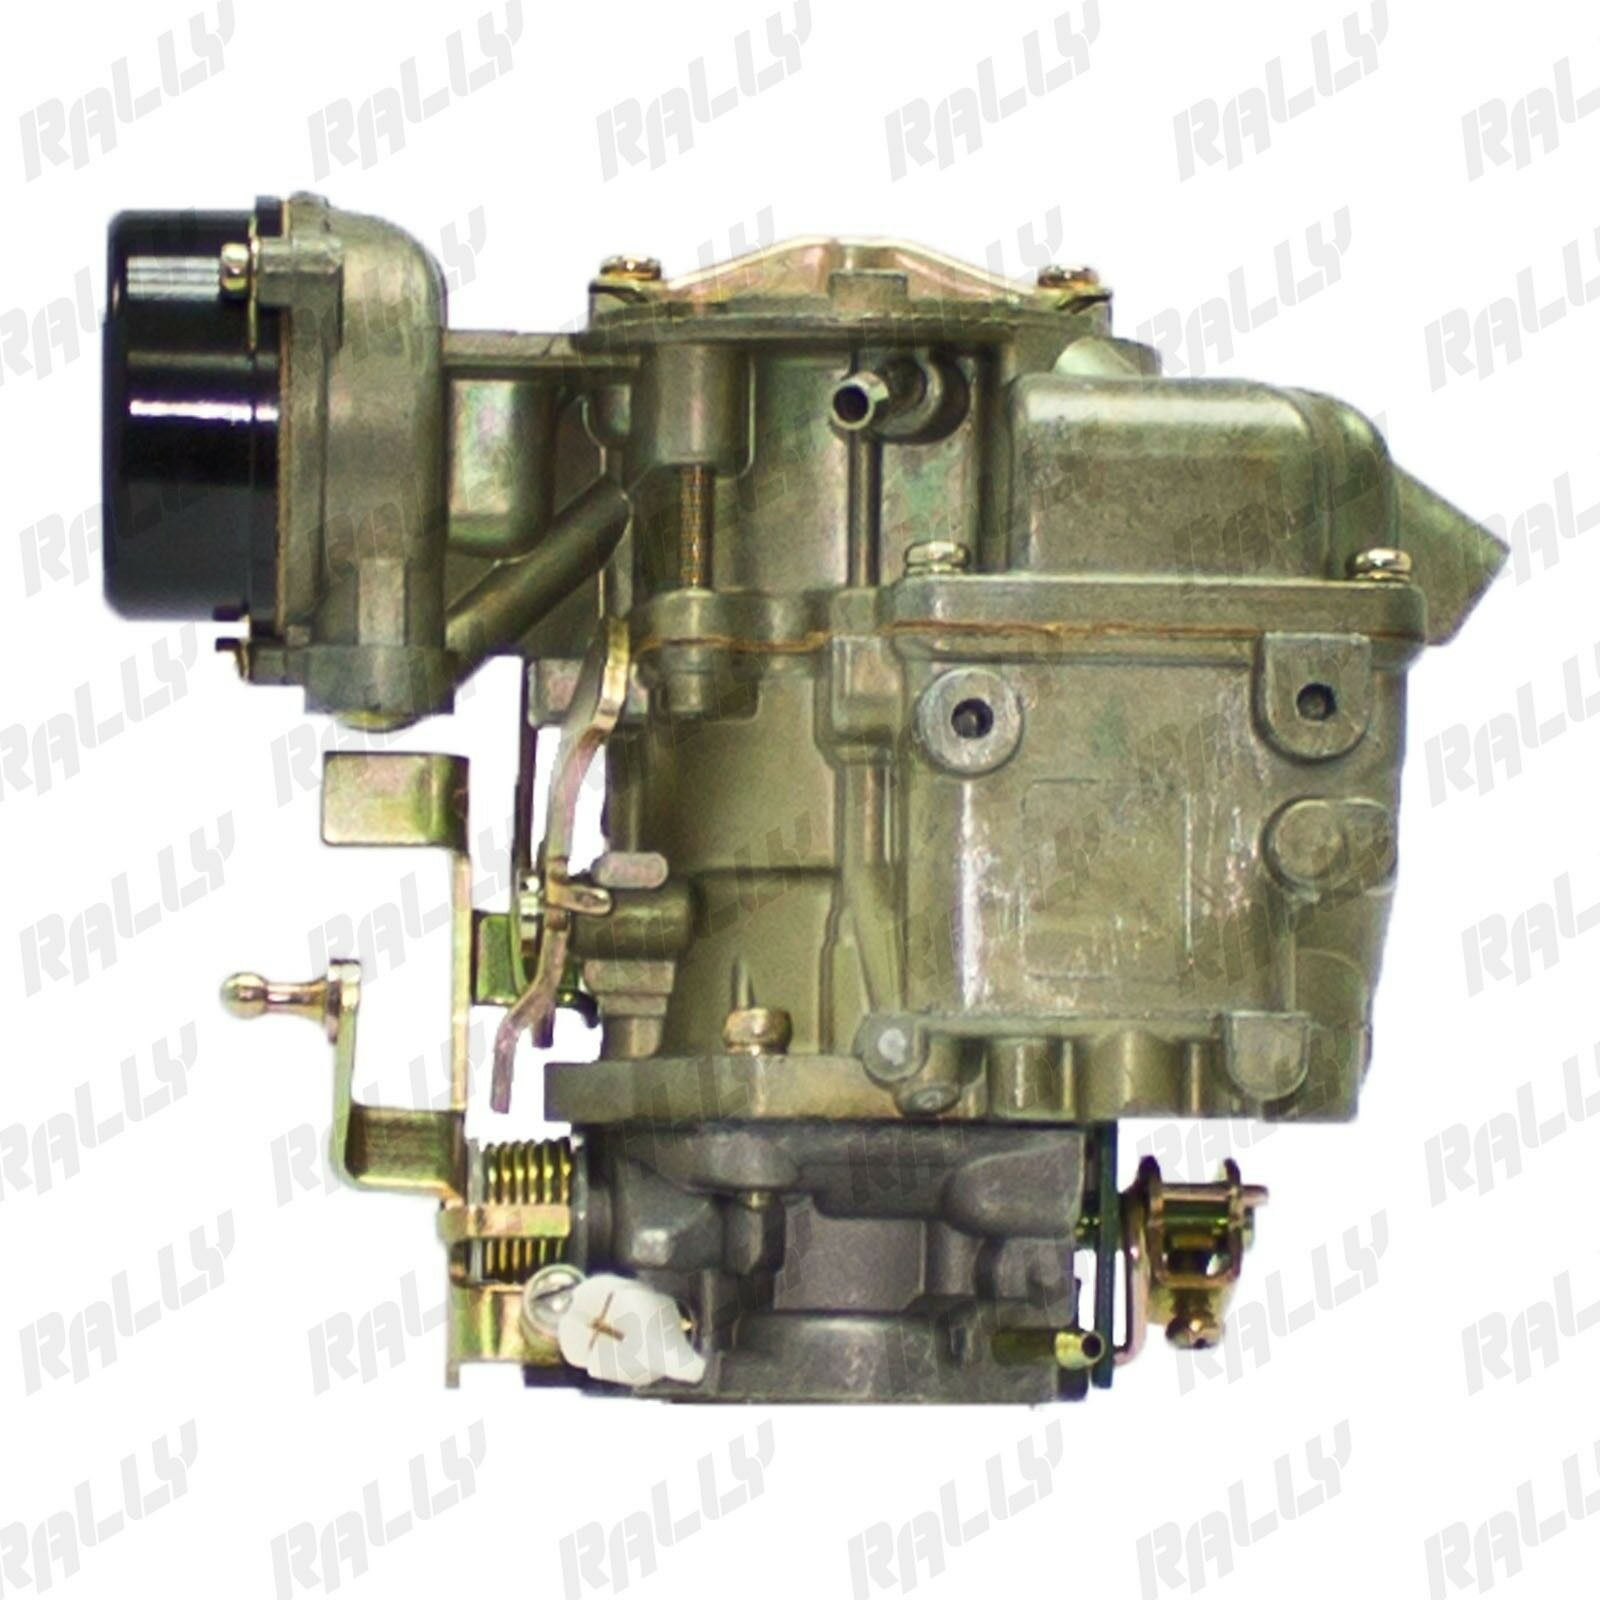 156 CARBURETOR YFA 1 BBL CARTER STYL FORD F150 240 250 300